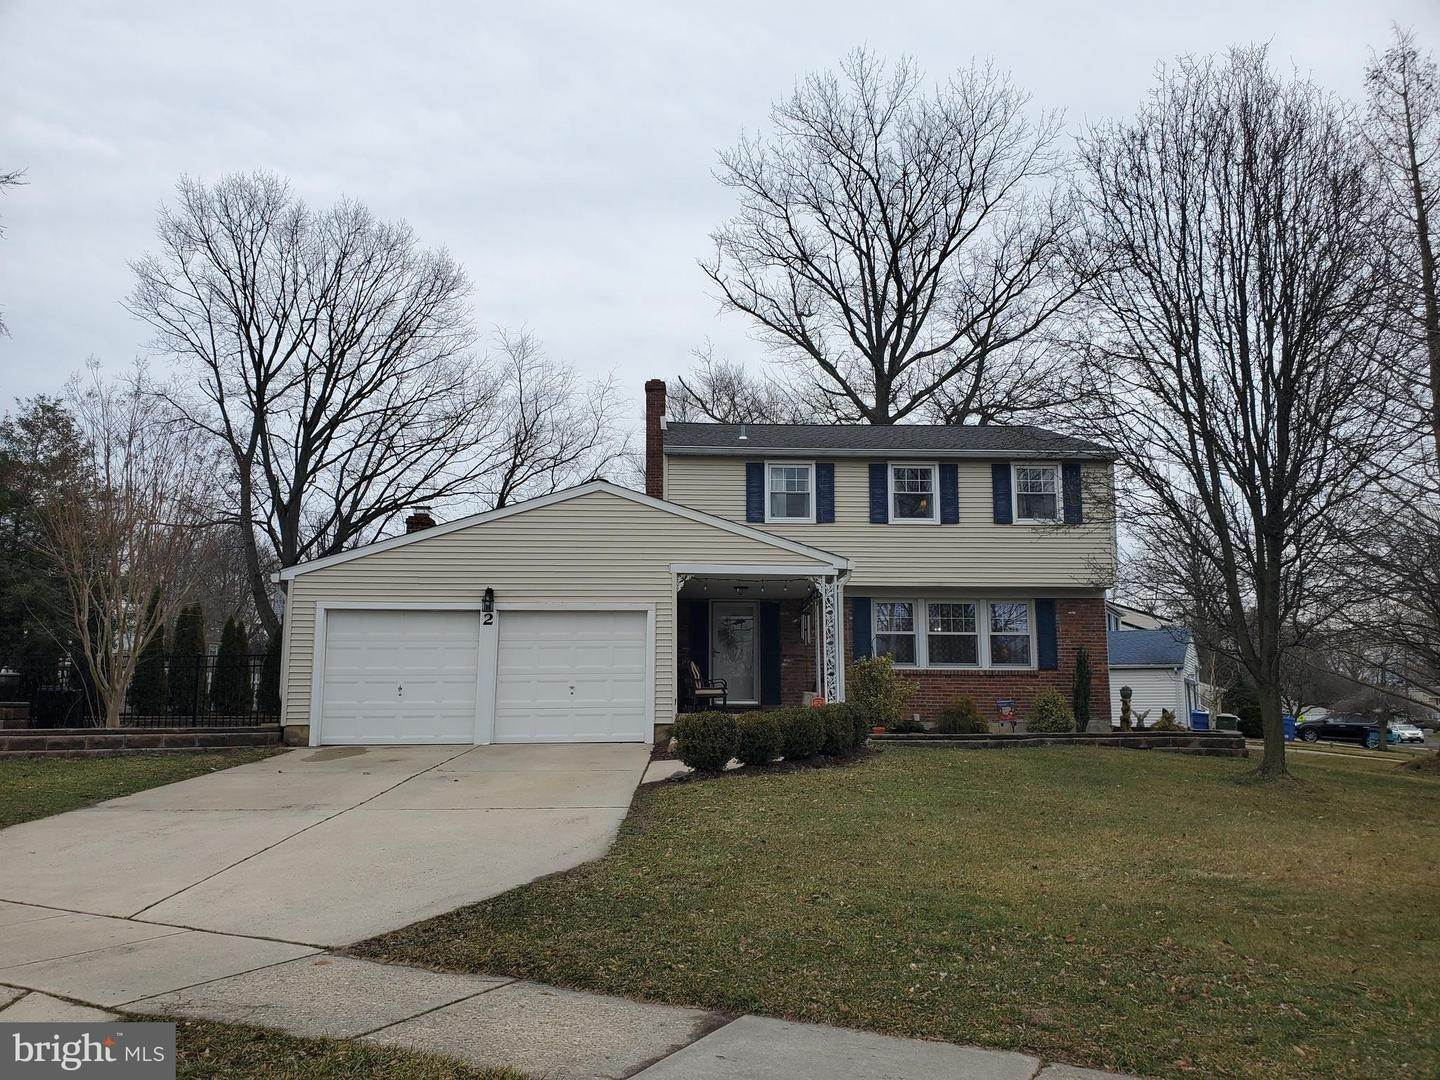 Detached House for Sale at 2 ROANOKE Road Cherry Hill, New Jersey 08003 United States